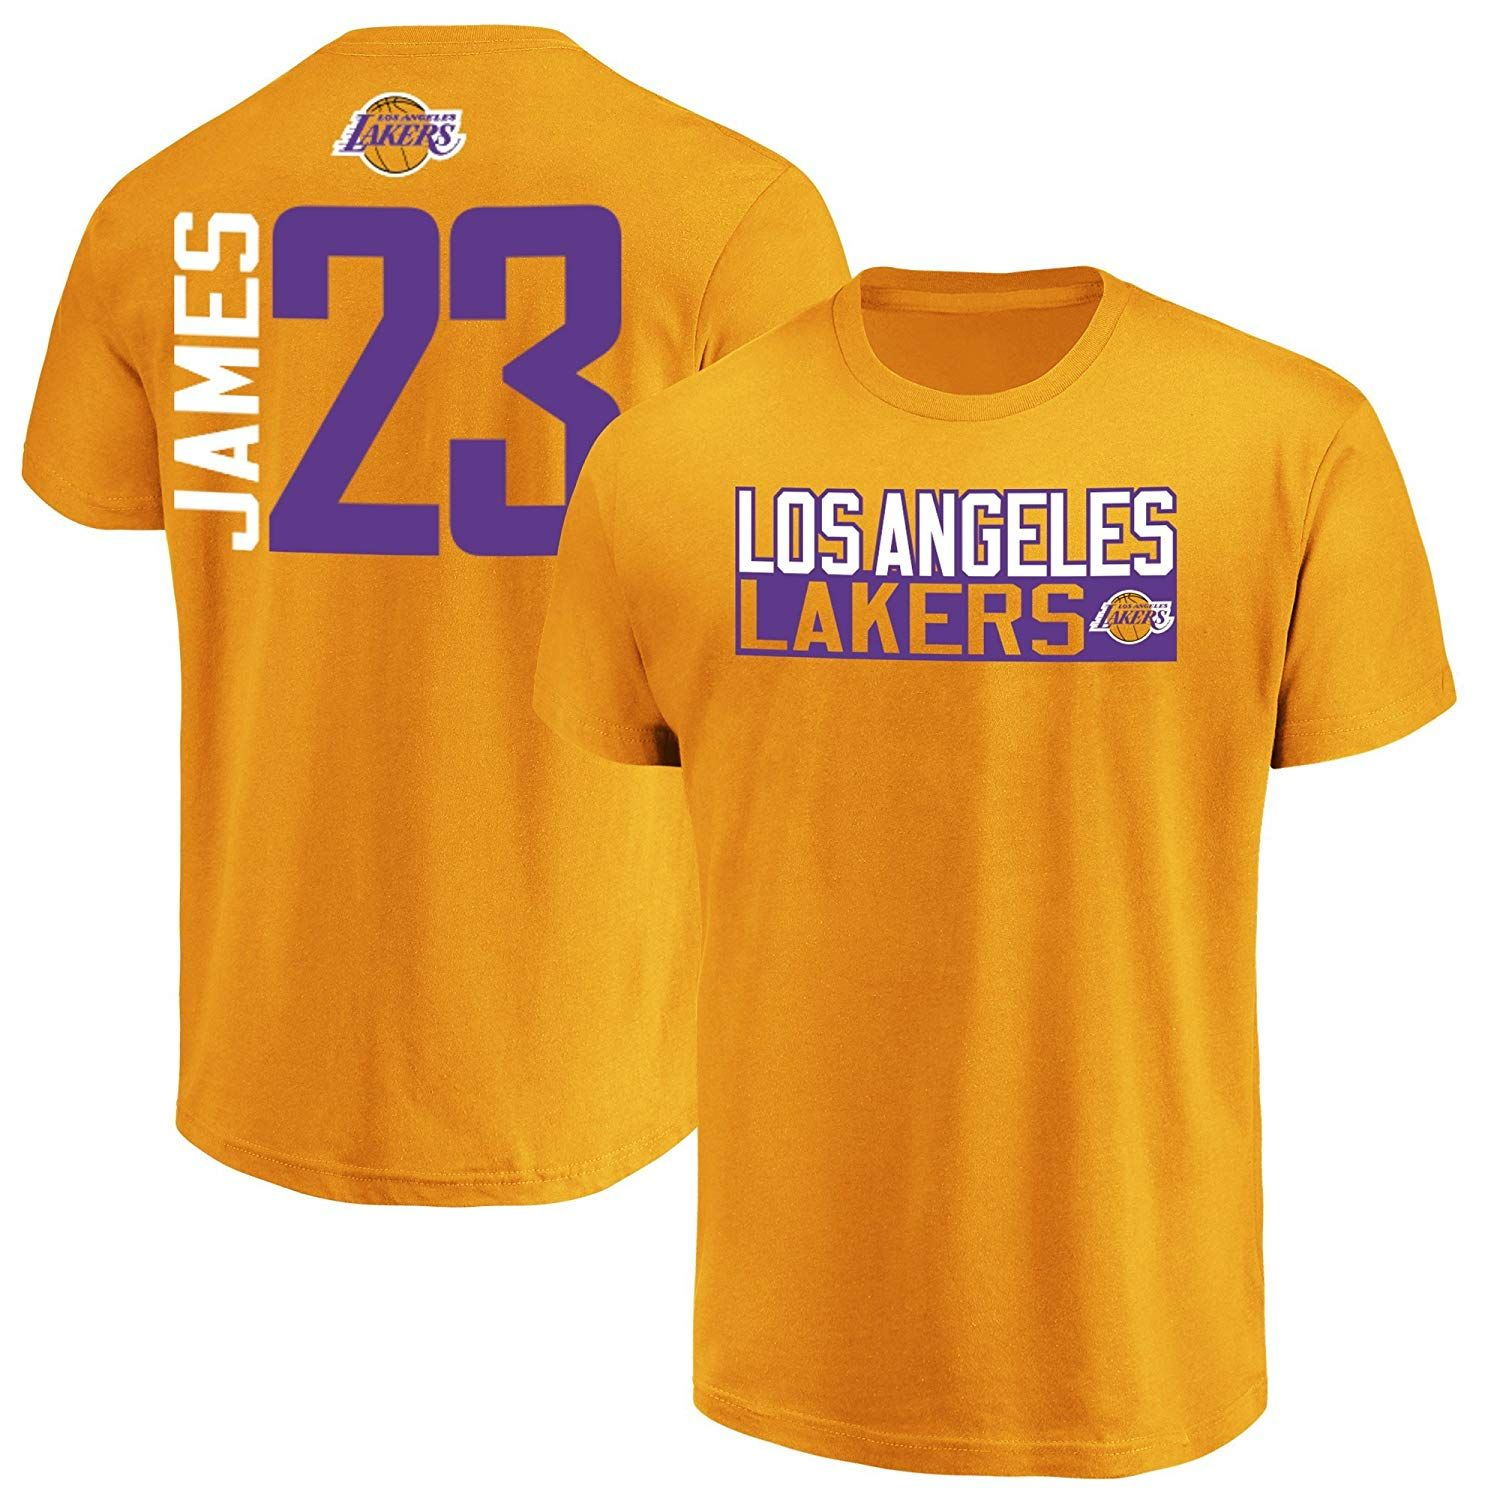 dfe1137cbcc Majestic Lebron James Los Angeles Lakers #23 Mens Vertical Player  TShirtSports amp; Outdoors, Amazon Affiliate link. Click image for detail,  ...